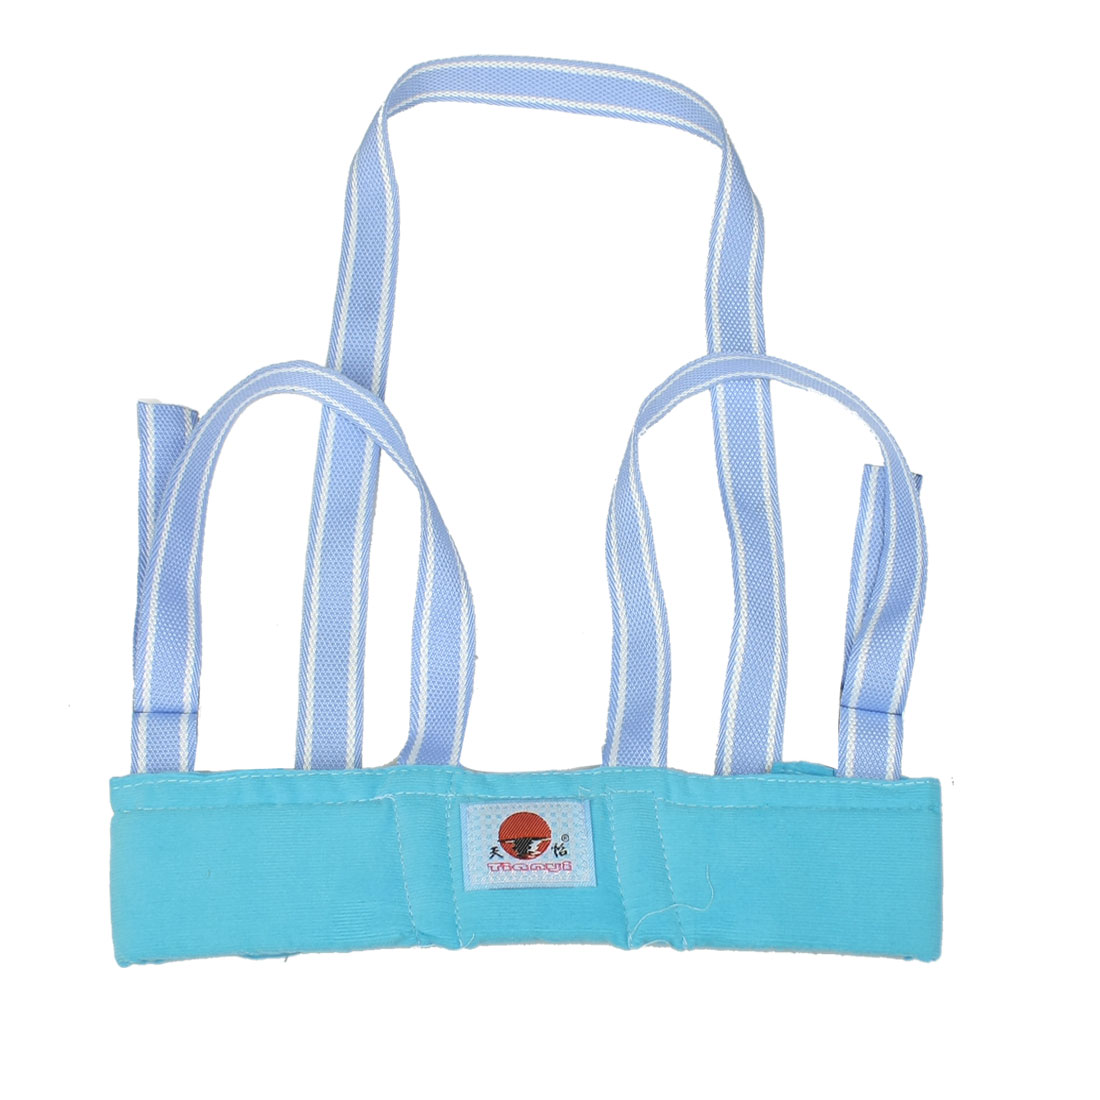 Toddler Baby Safety Harness Adjustable Belt Walking Walker Assistant Sky Blue